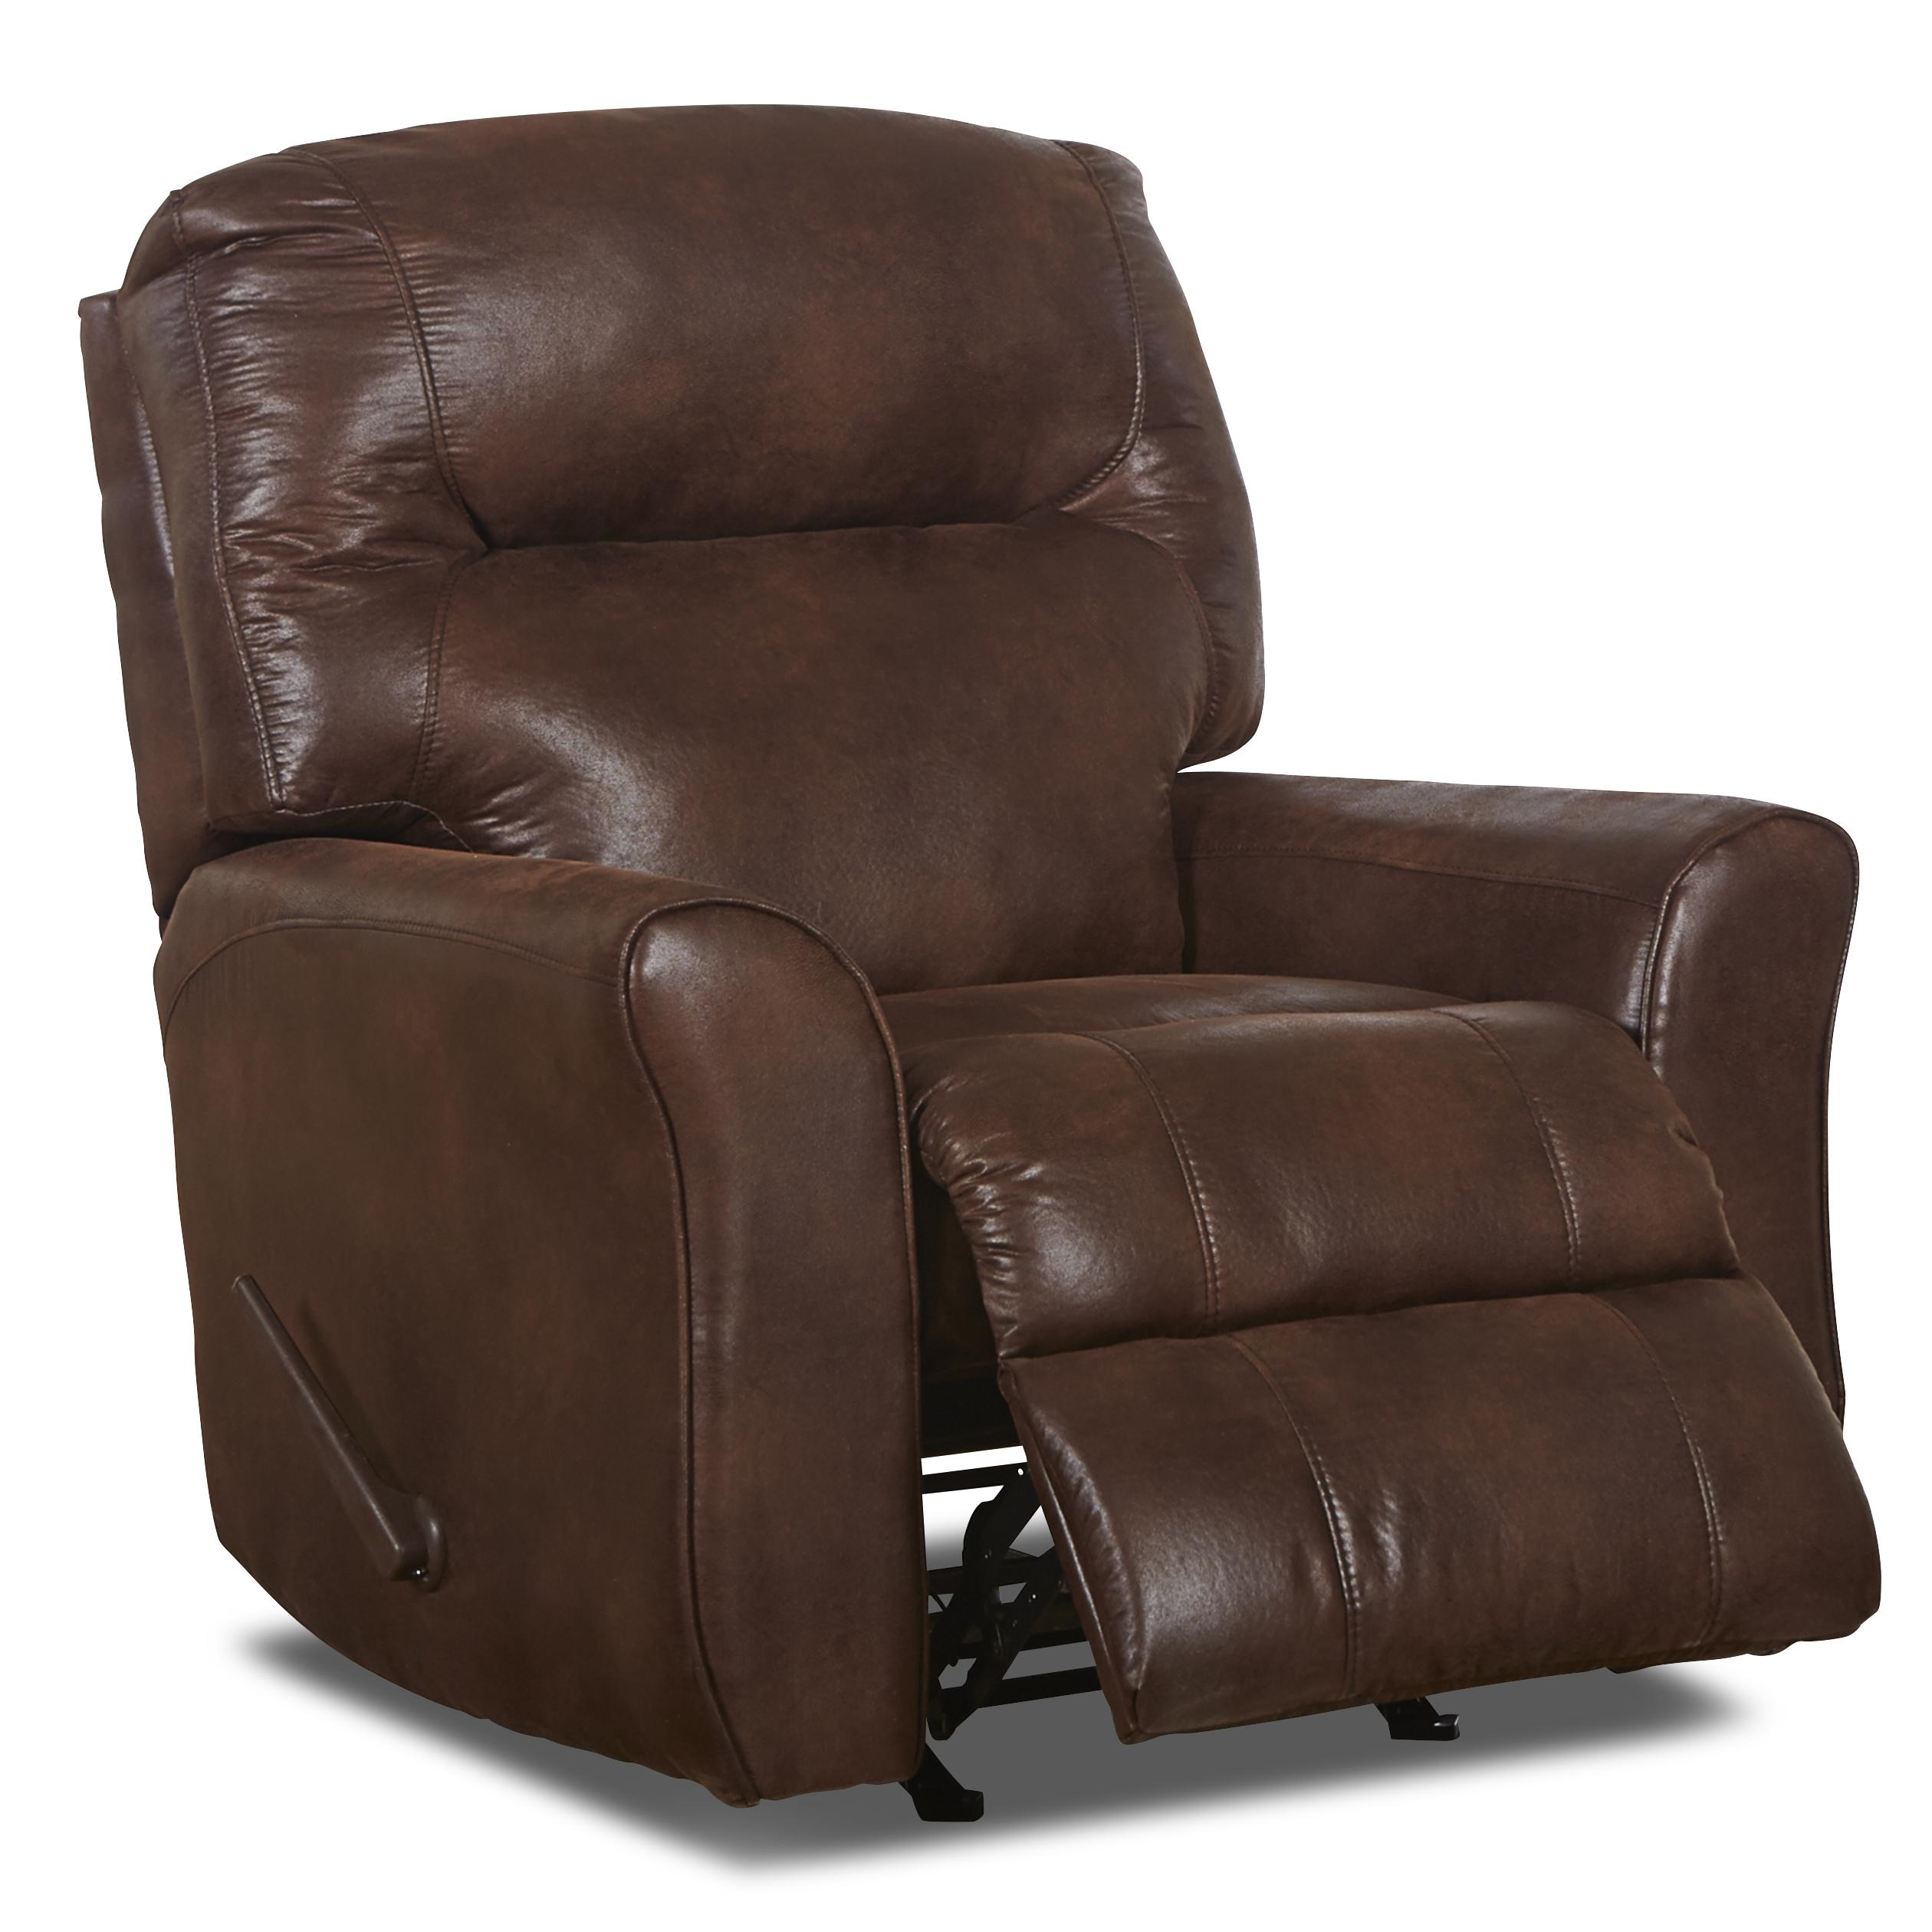 Reclining Rocking Chair Casual Leather Reclining Rocking Chair With Attached Back